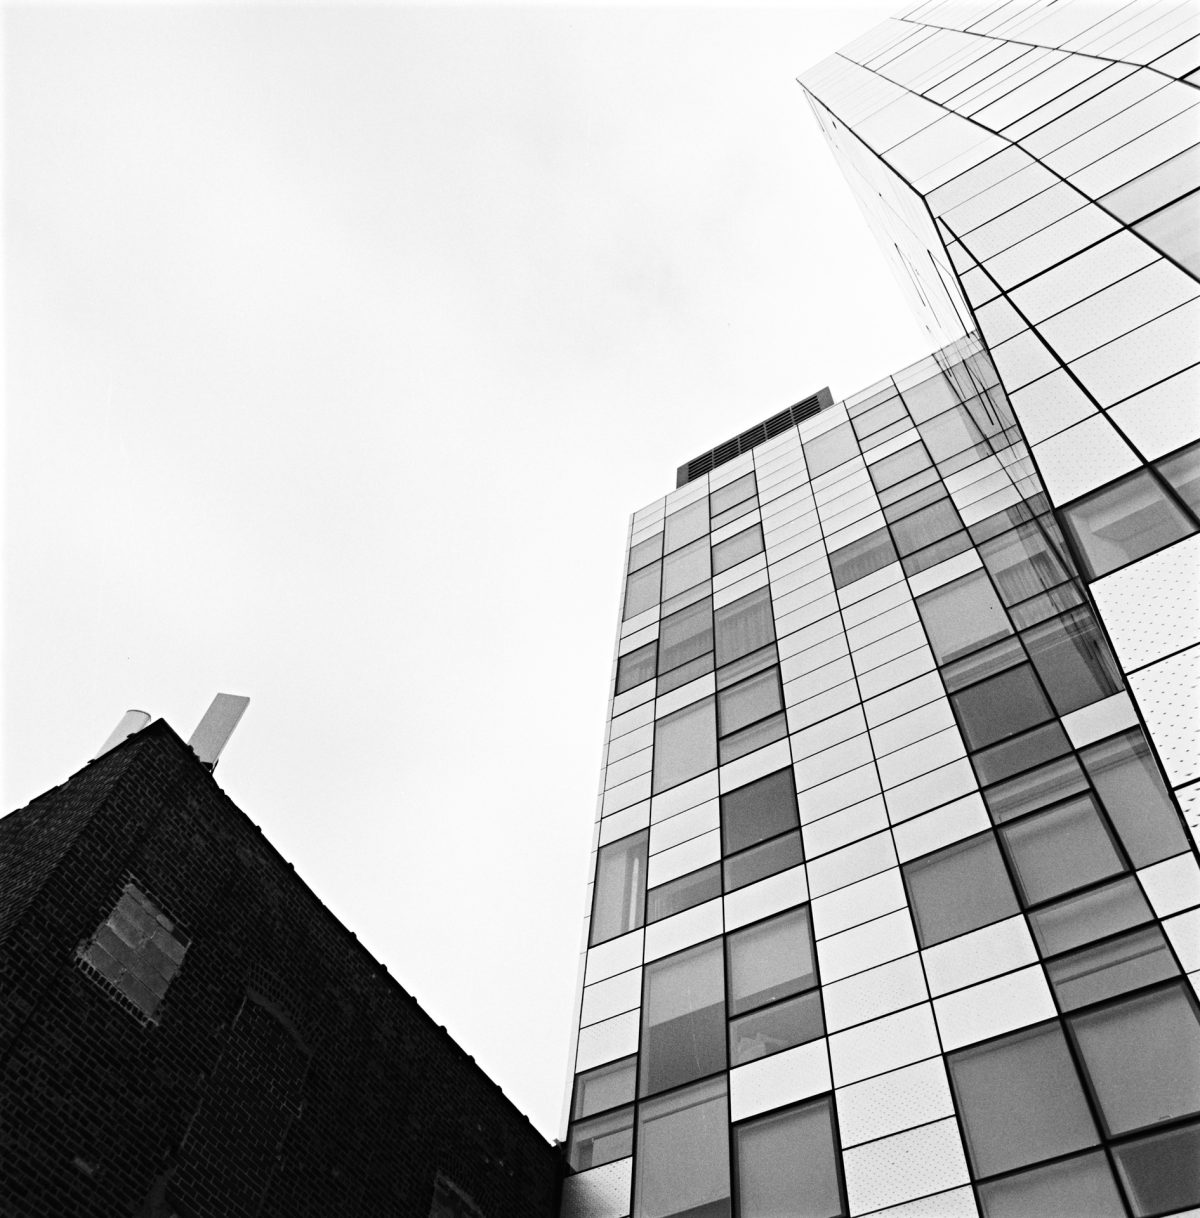 photography by David Hatters in NYC, Geometries of the sky, film shot with Hasselblad